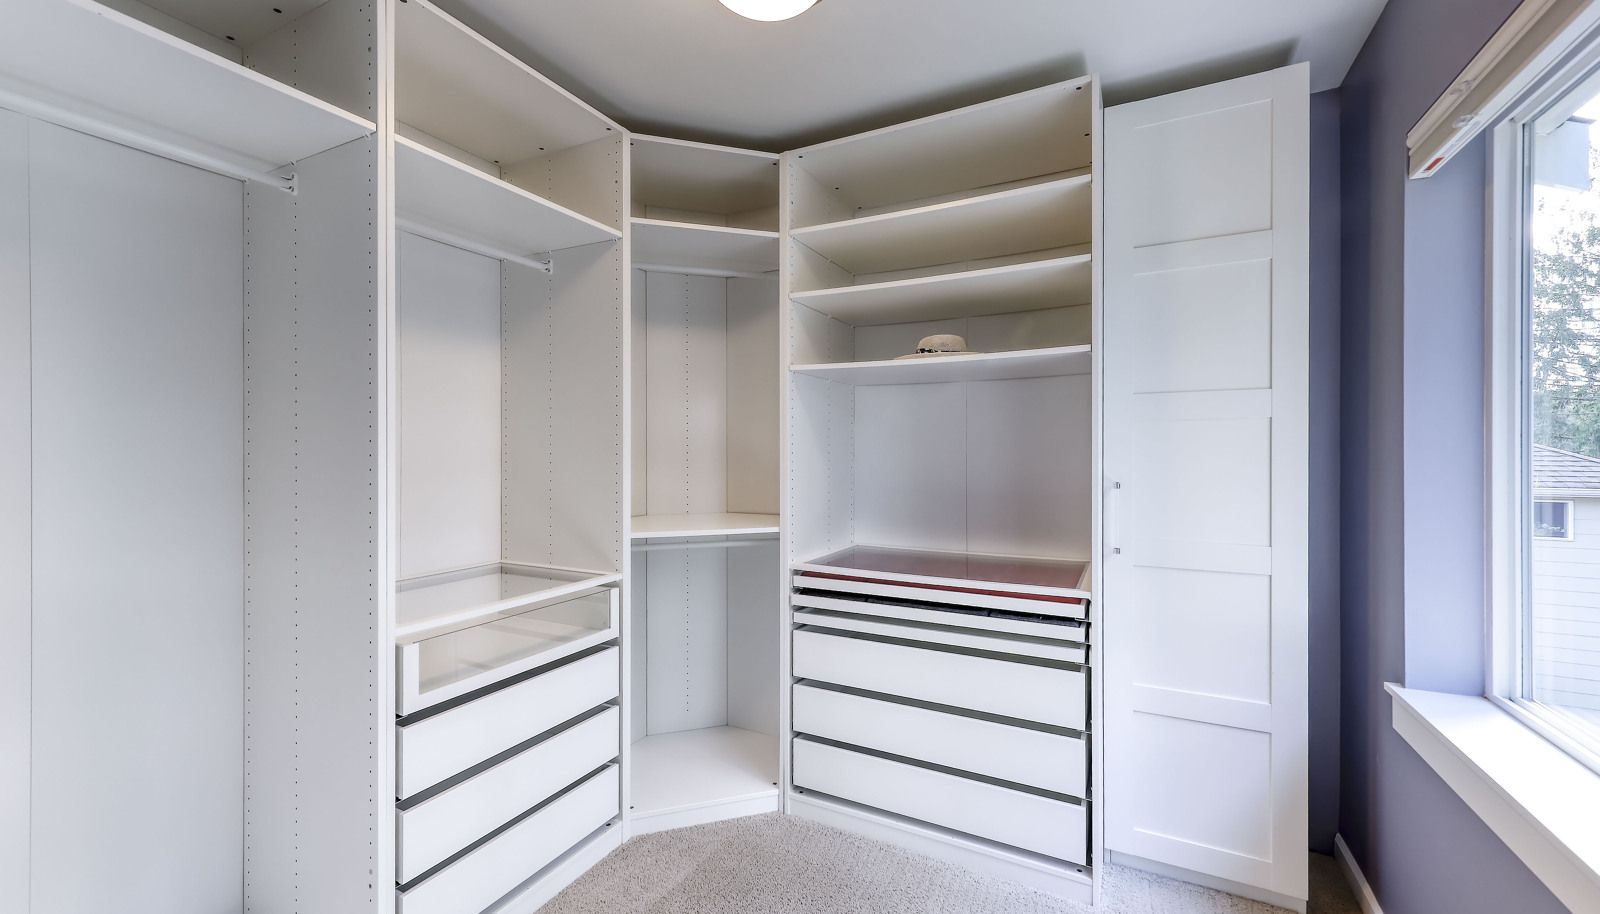 The primary master closet - there is also a 2nd master suite closet off the master bath!